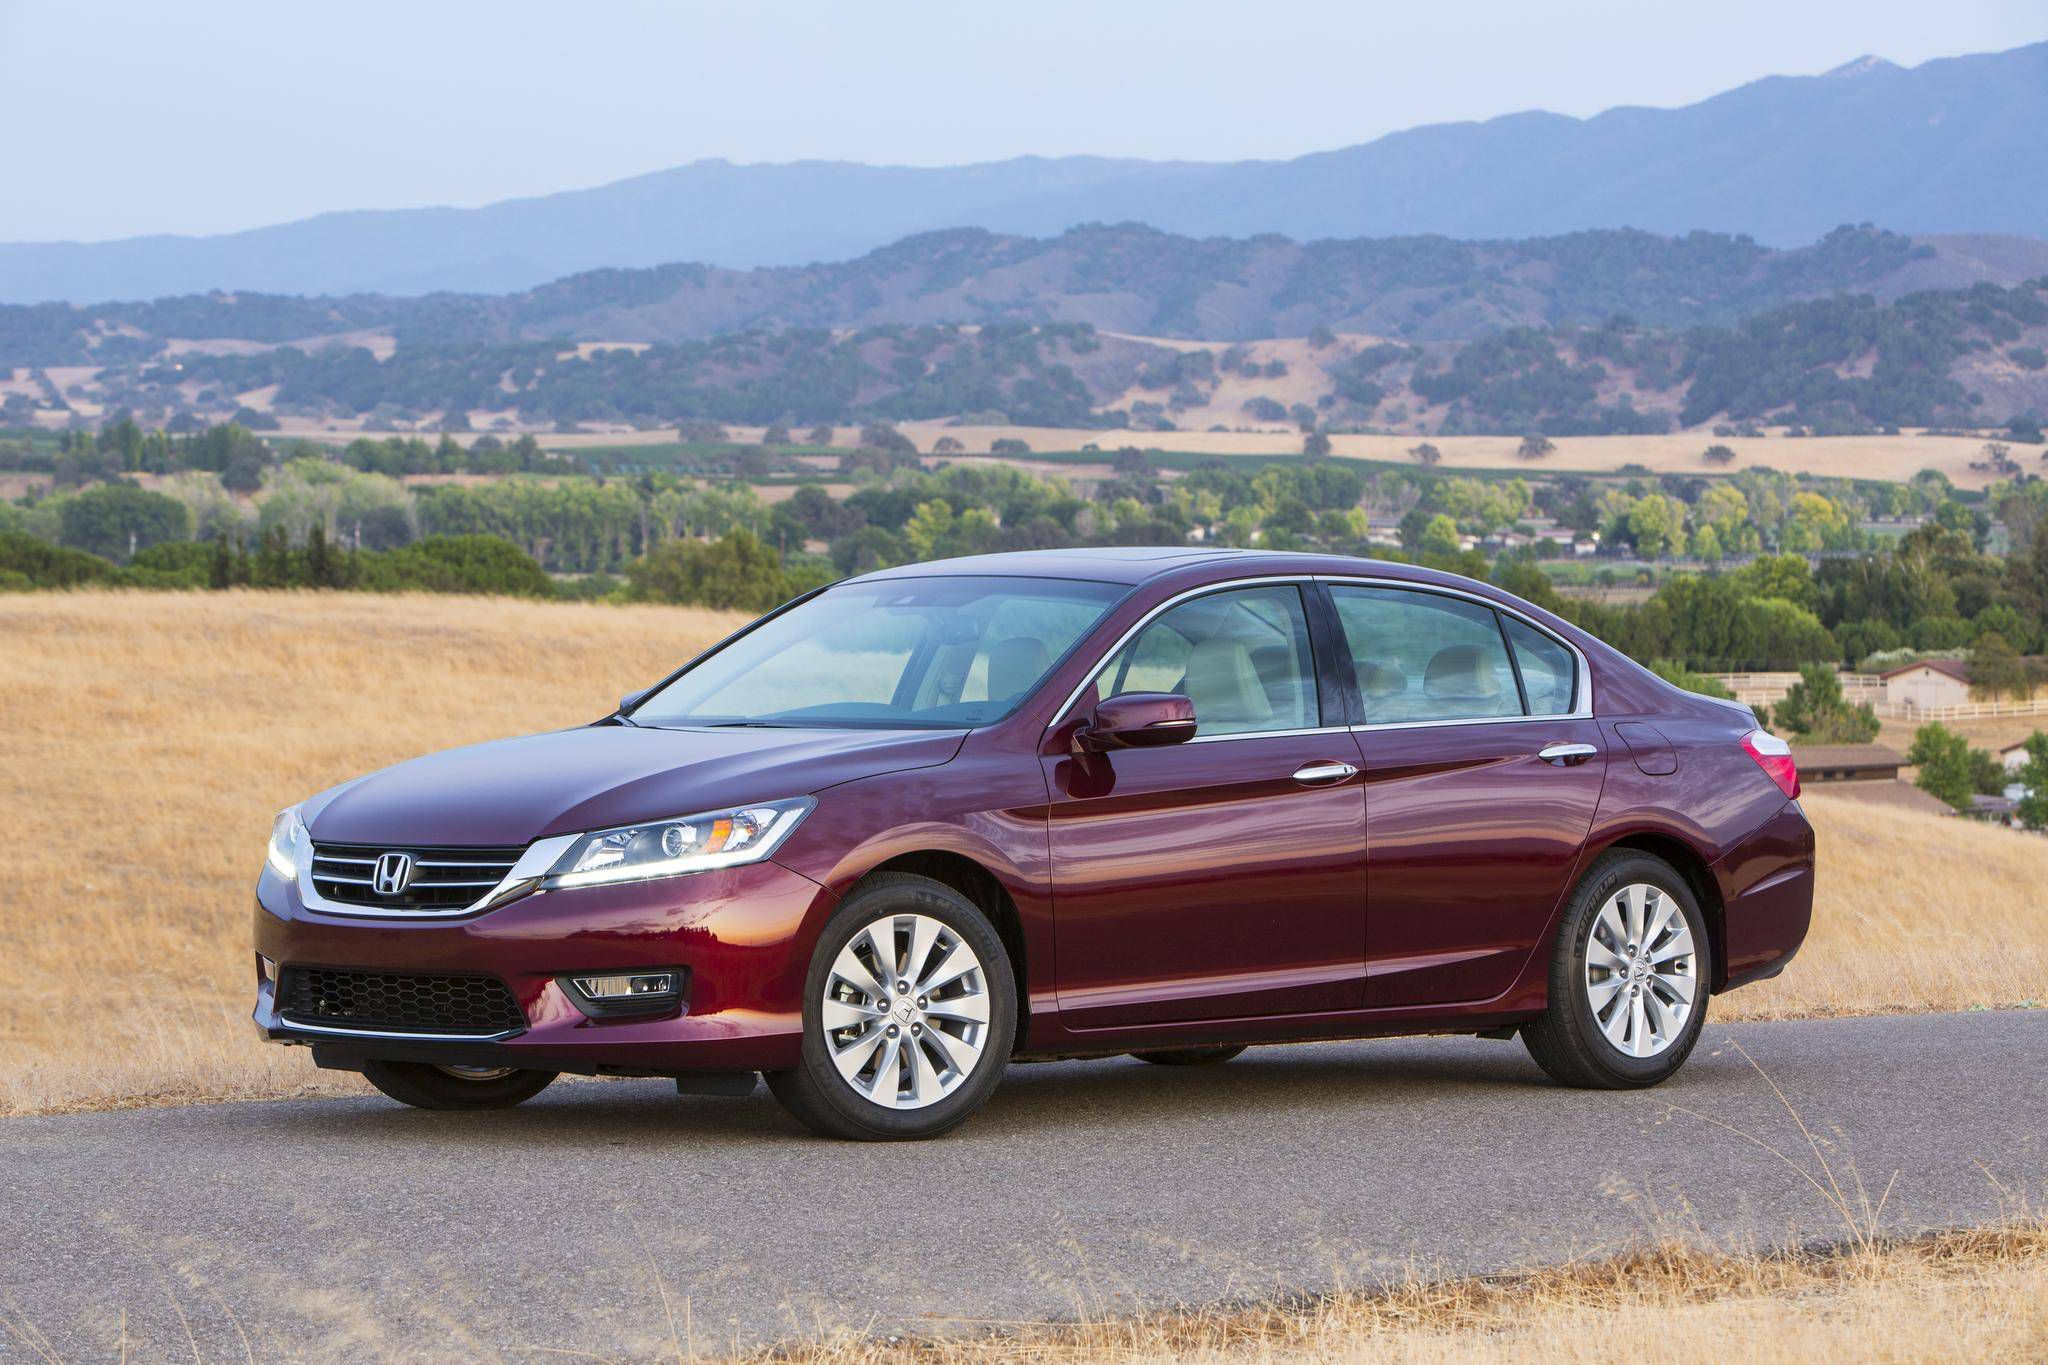 Buying used: Should we go with the Honda Accord or Toyota Camry